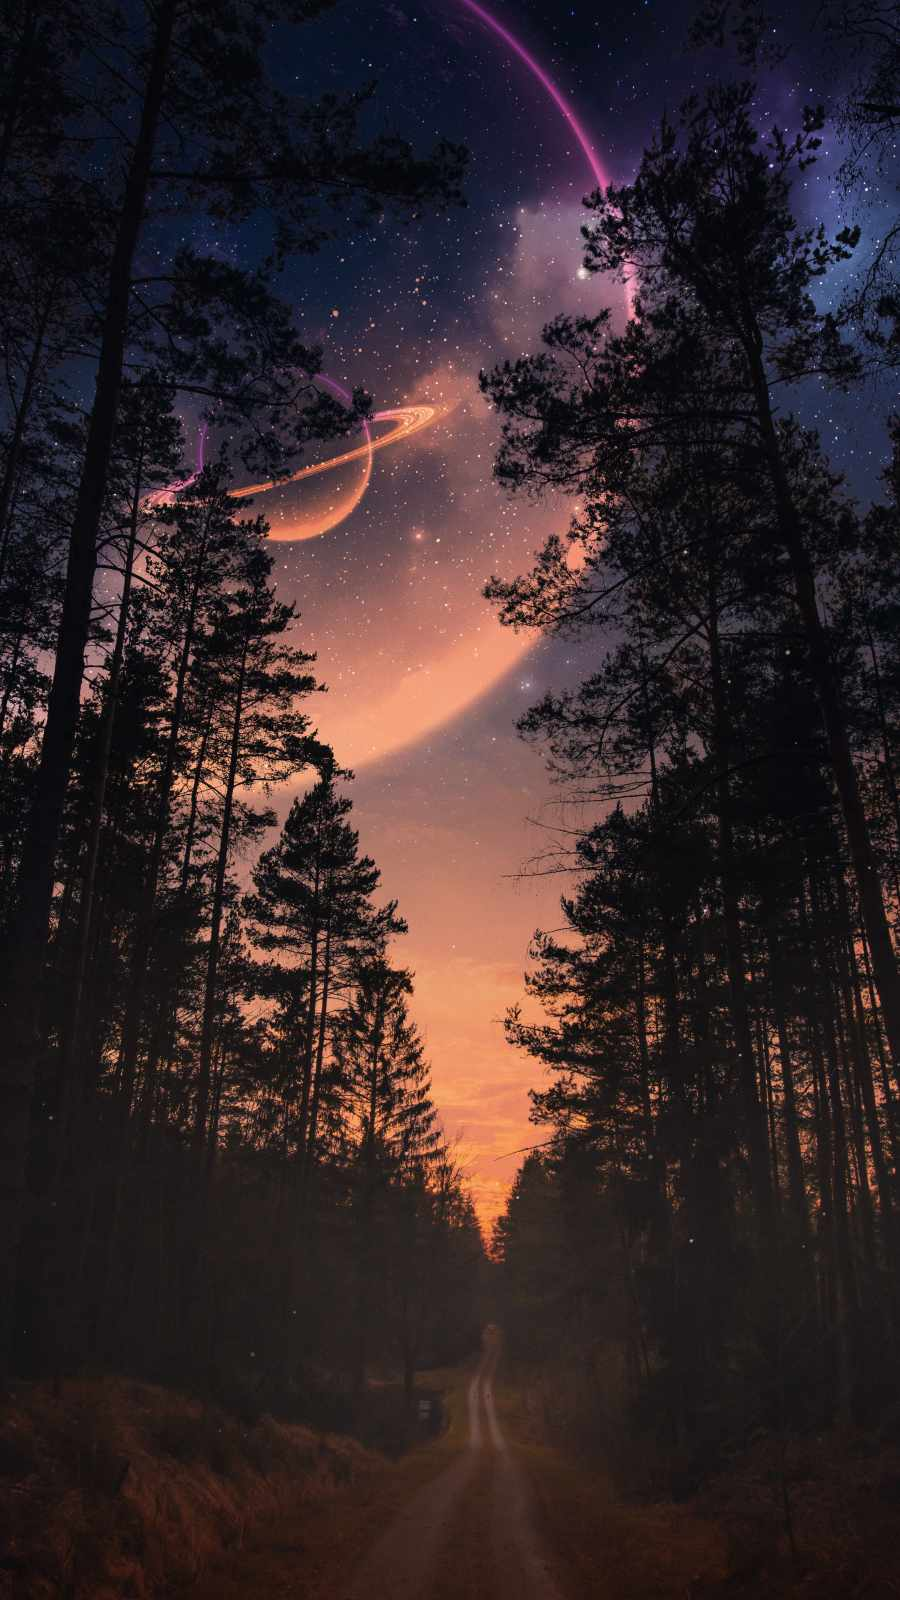 Space view from Forest Near Saturn Planet